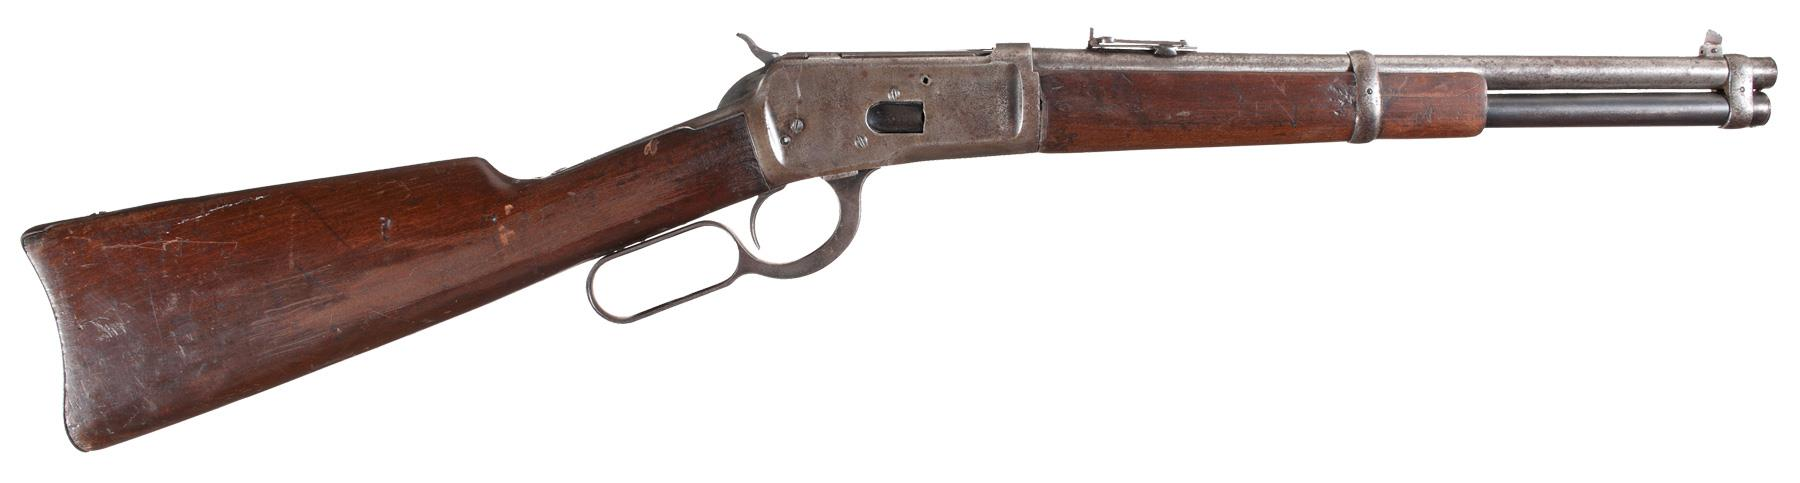 Image result for winchester 1892 carbine